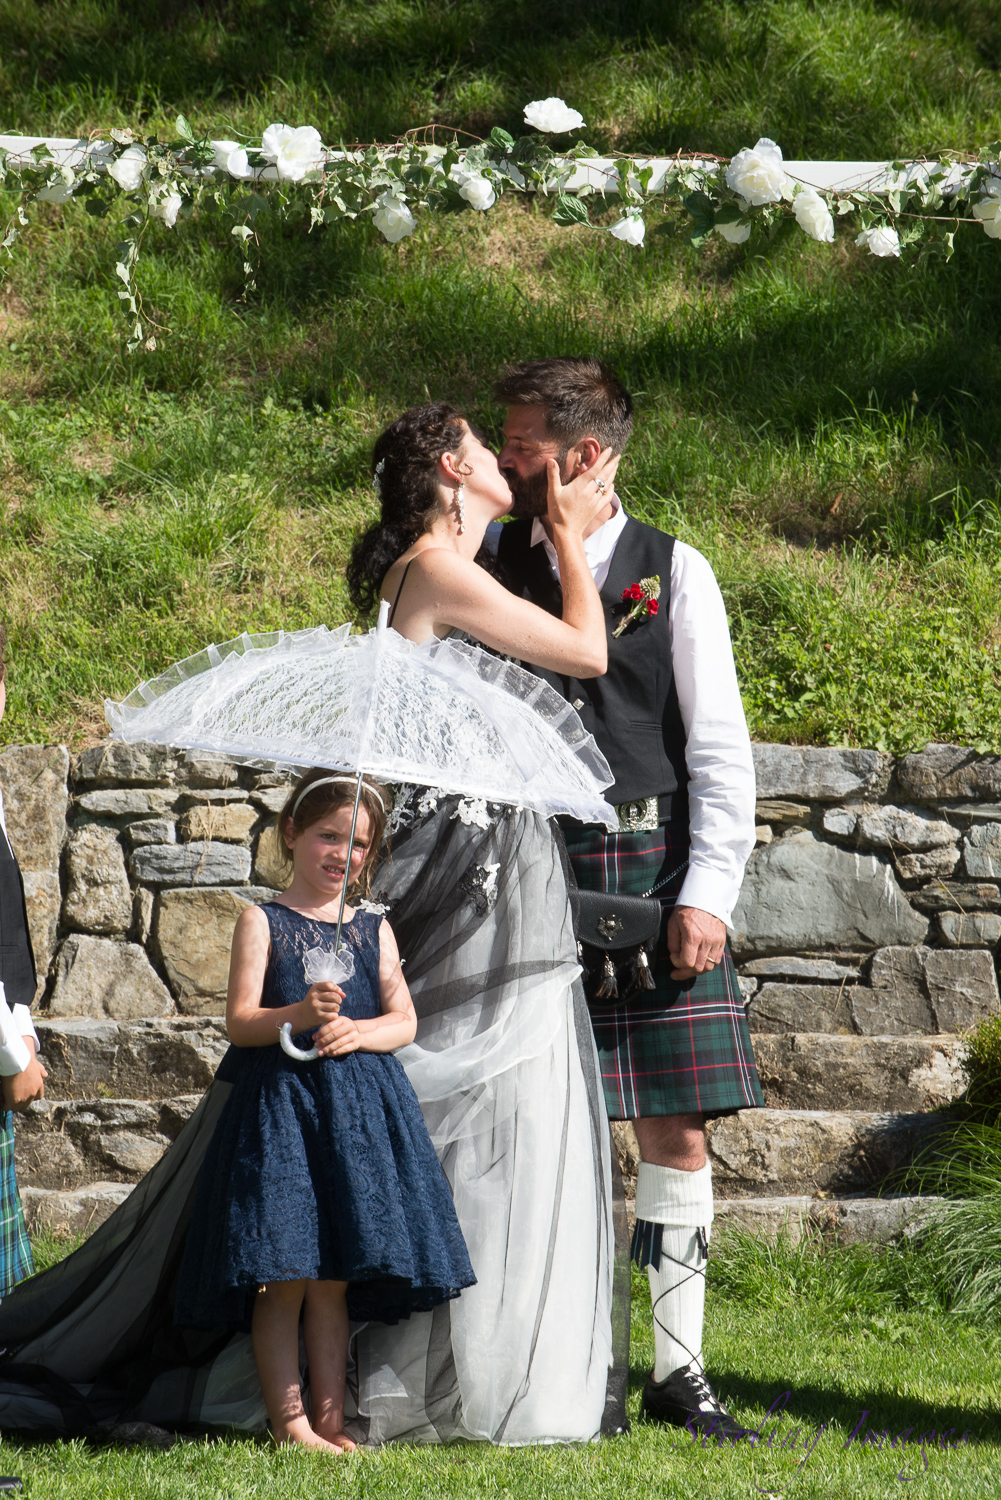 Wedding photography by Nelson wedding photographer Grant Stirling